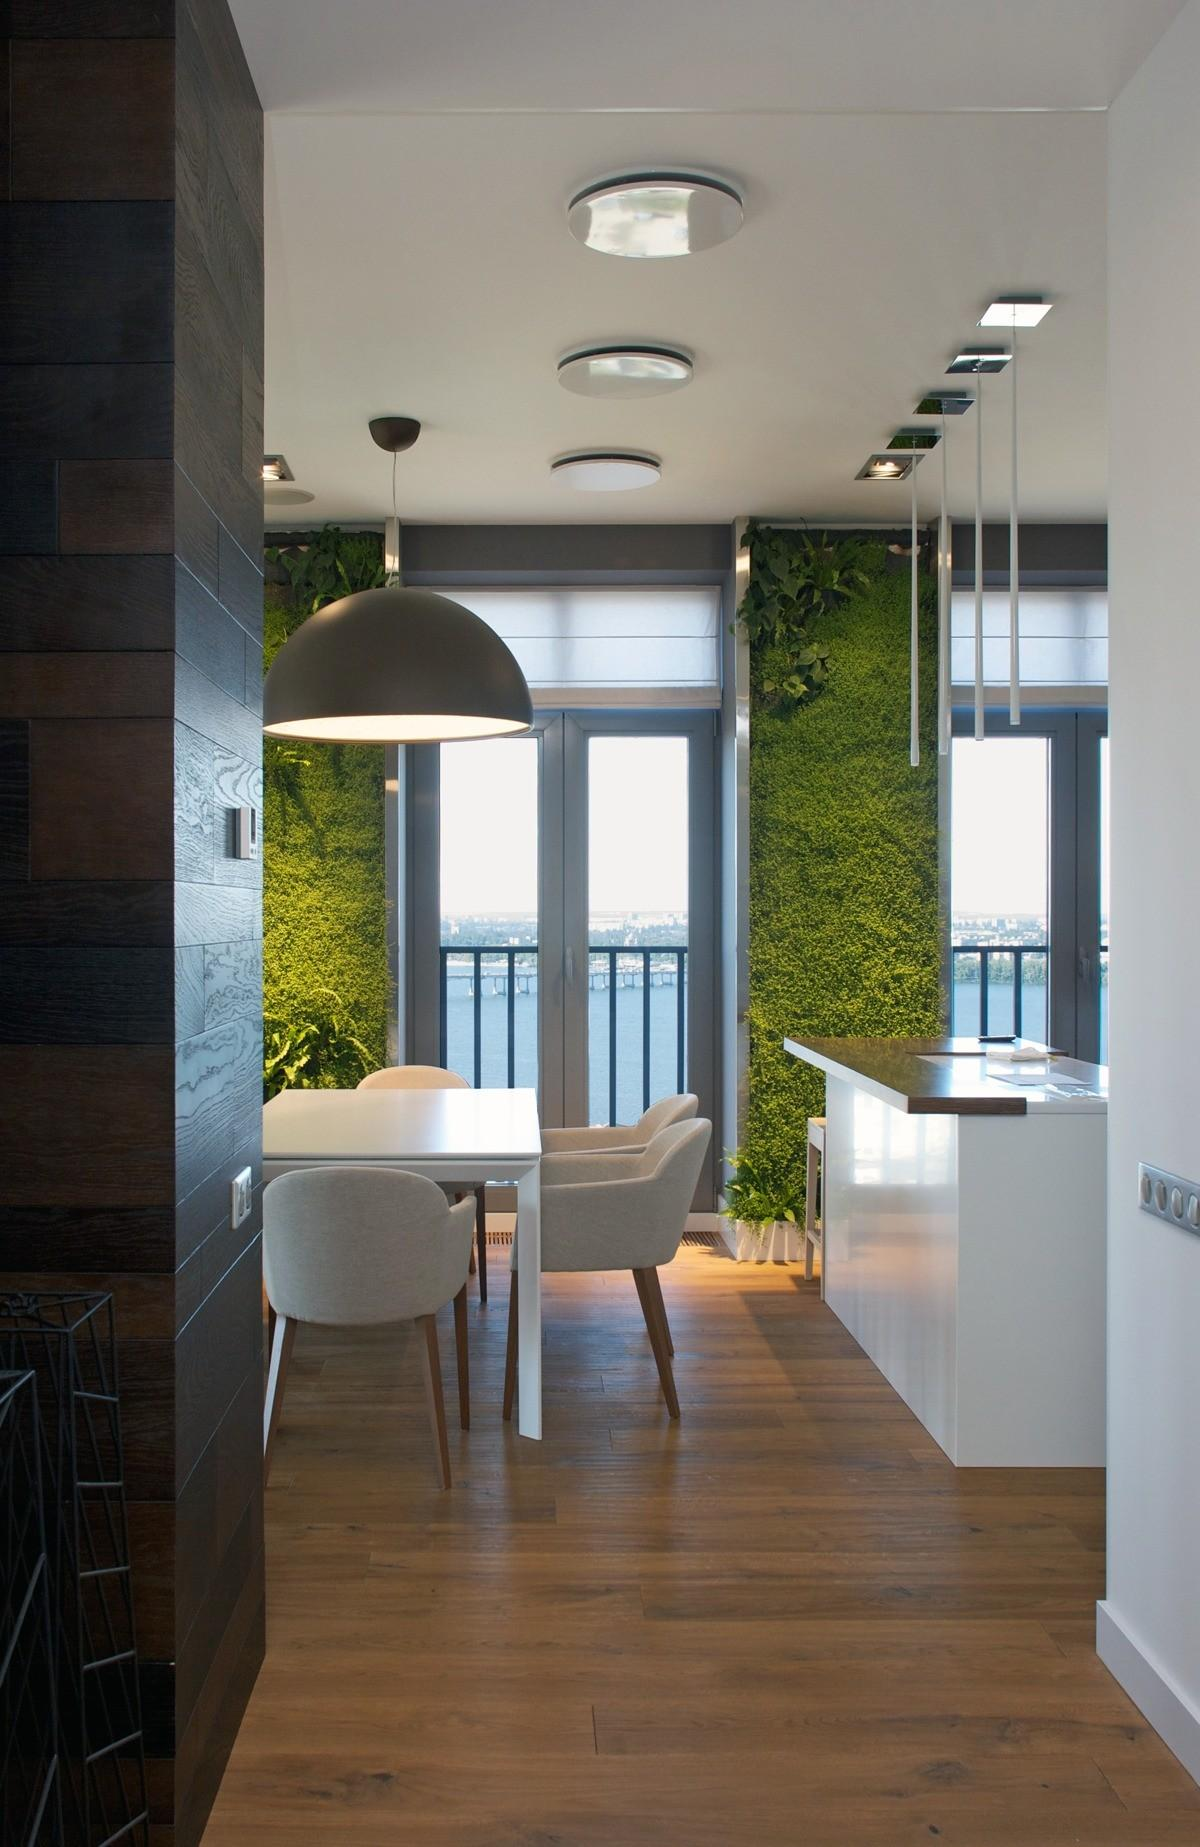 Vertical Garden Walls Add Life Apartment Interior